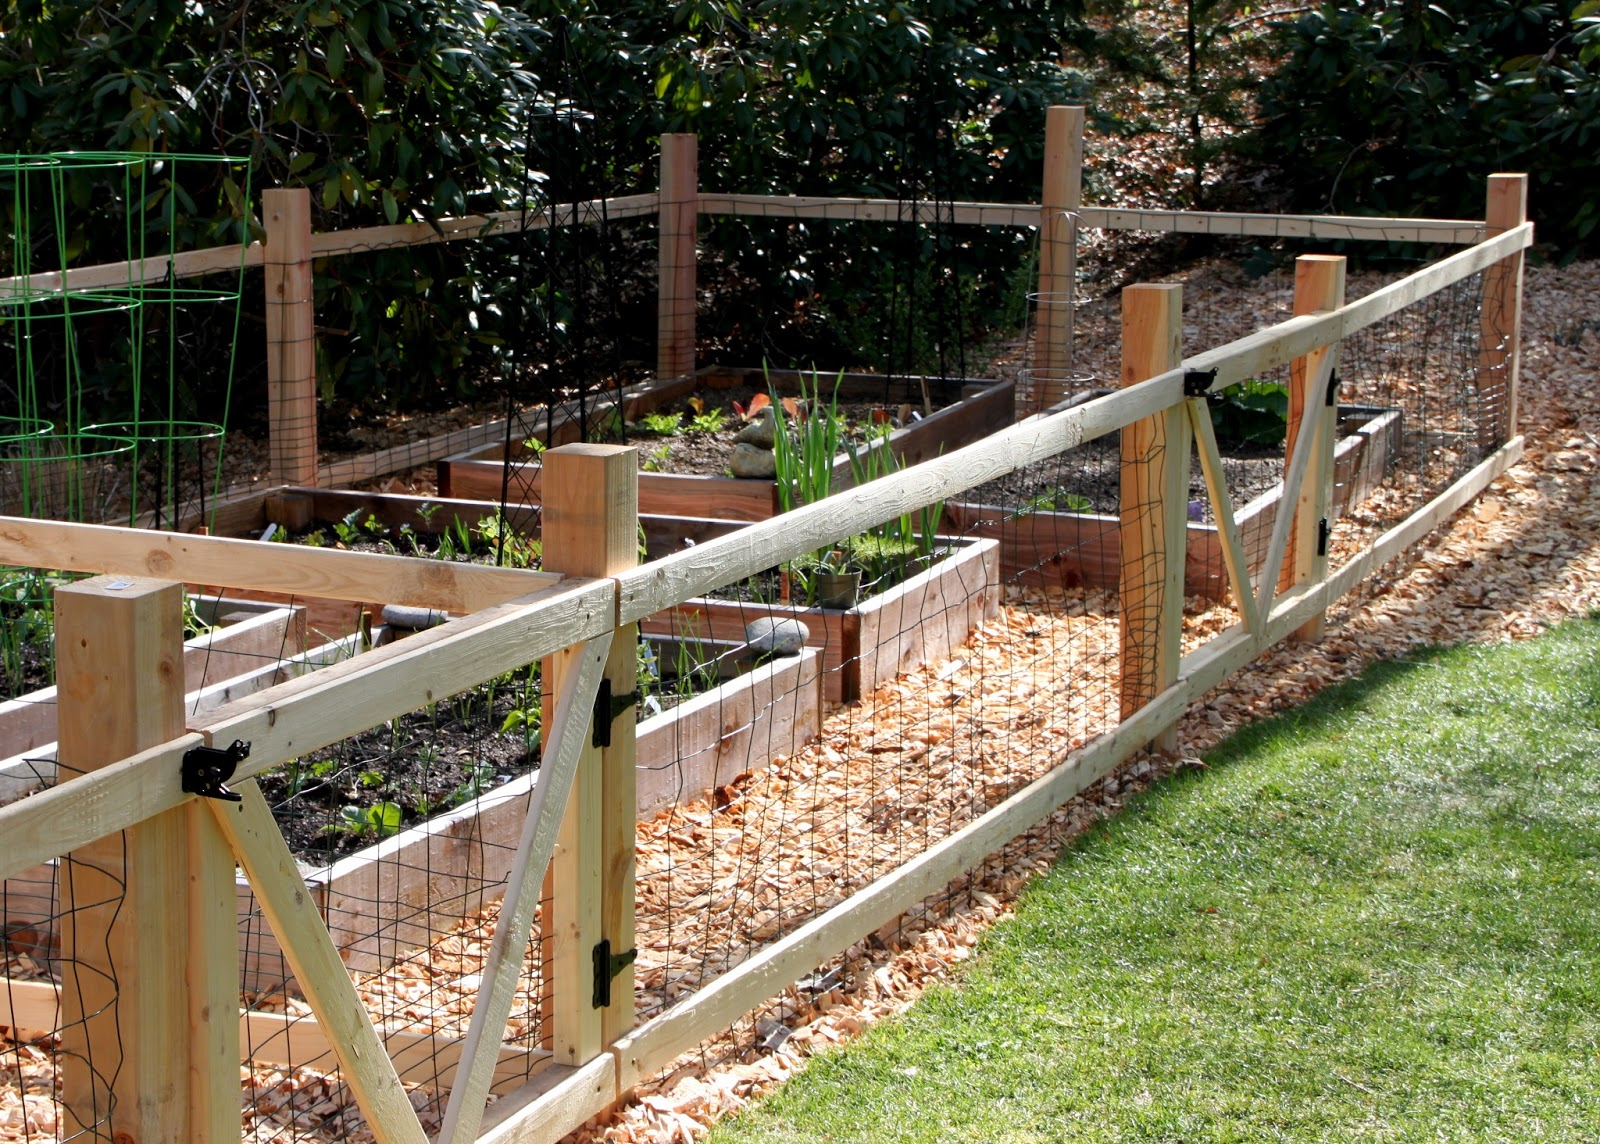 Small vegetable garden fencing - A Simple Garden Fence